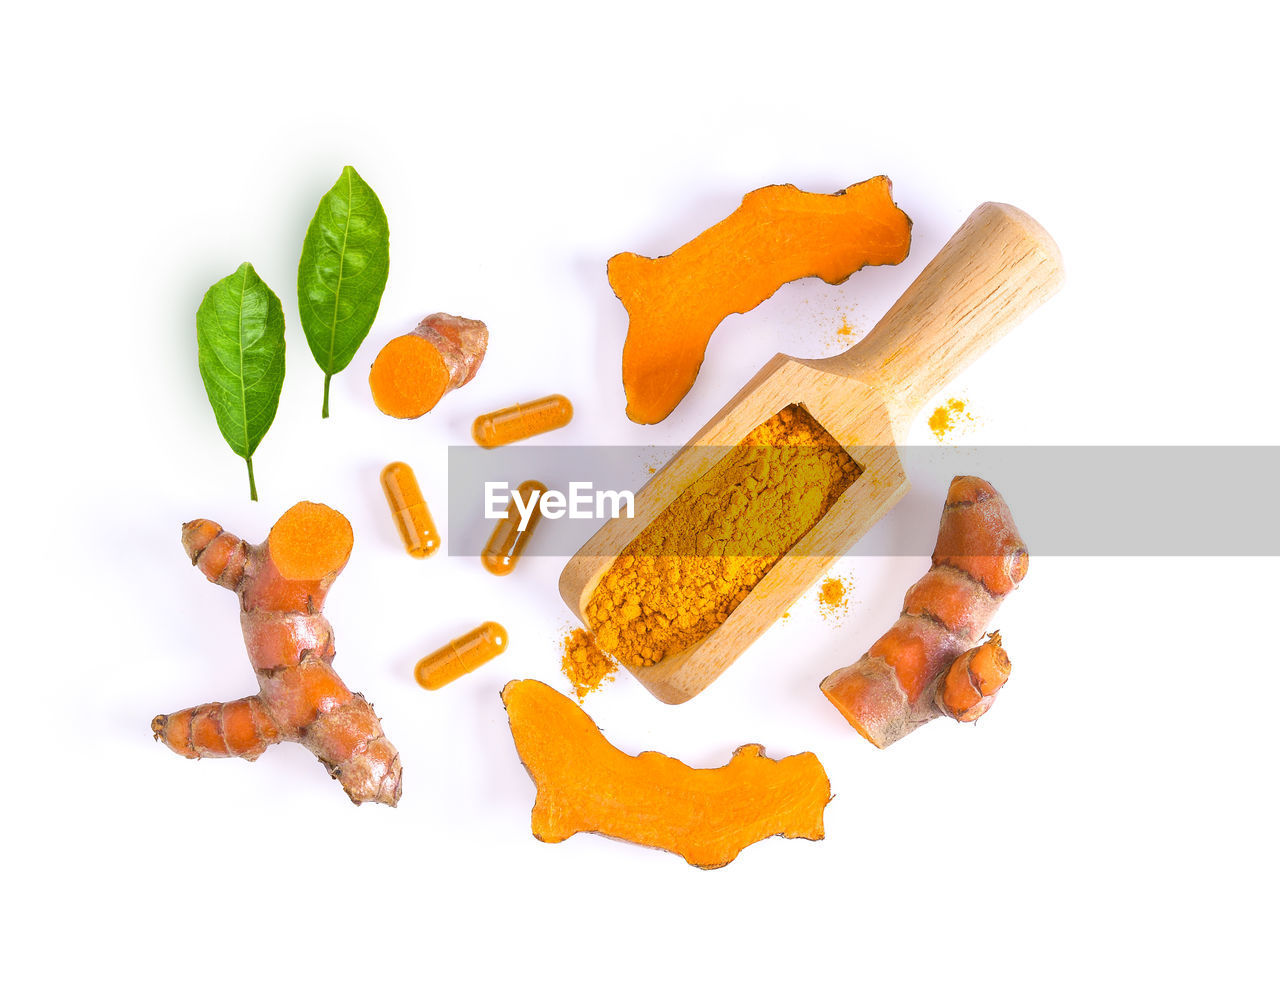 white background, food, still life, studio shot, food and drink, indoors, freshness, close-up, high angle view, no people, vegetable, unhealthy eating, spice, ready-to-eat, wellbeing, cookie, sweet food, cut out, variation, brown, temptation, snack